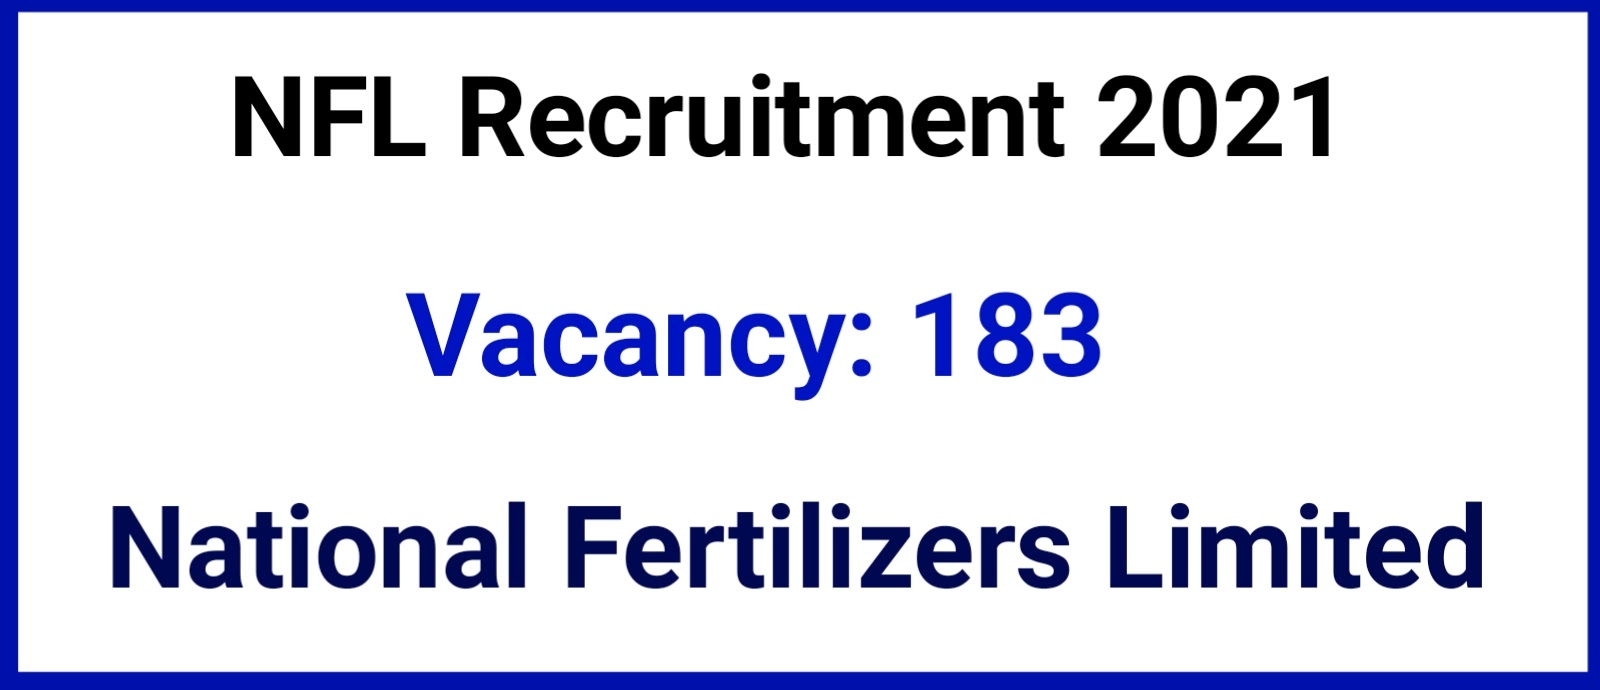 National Fertilizers Limited Recruitment 2021 – 183 Vacancy, Online Apply